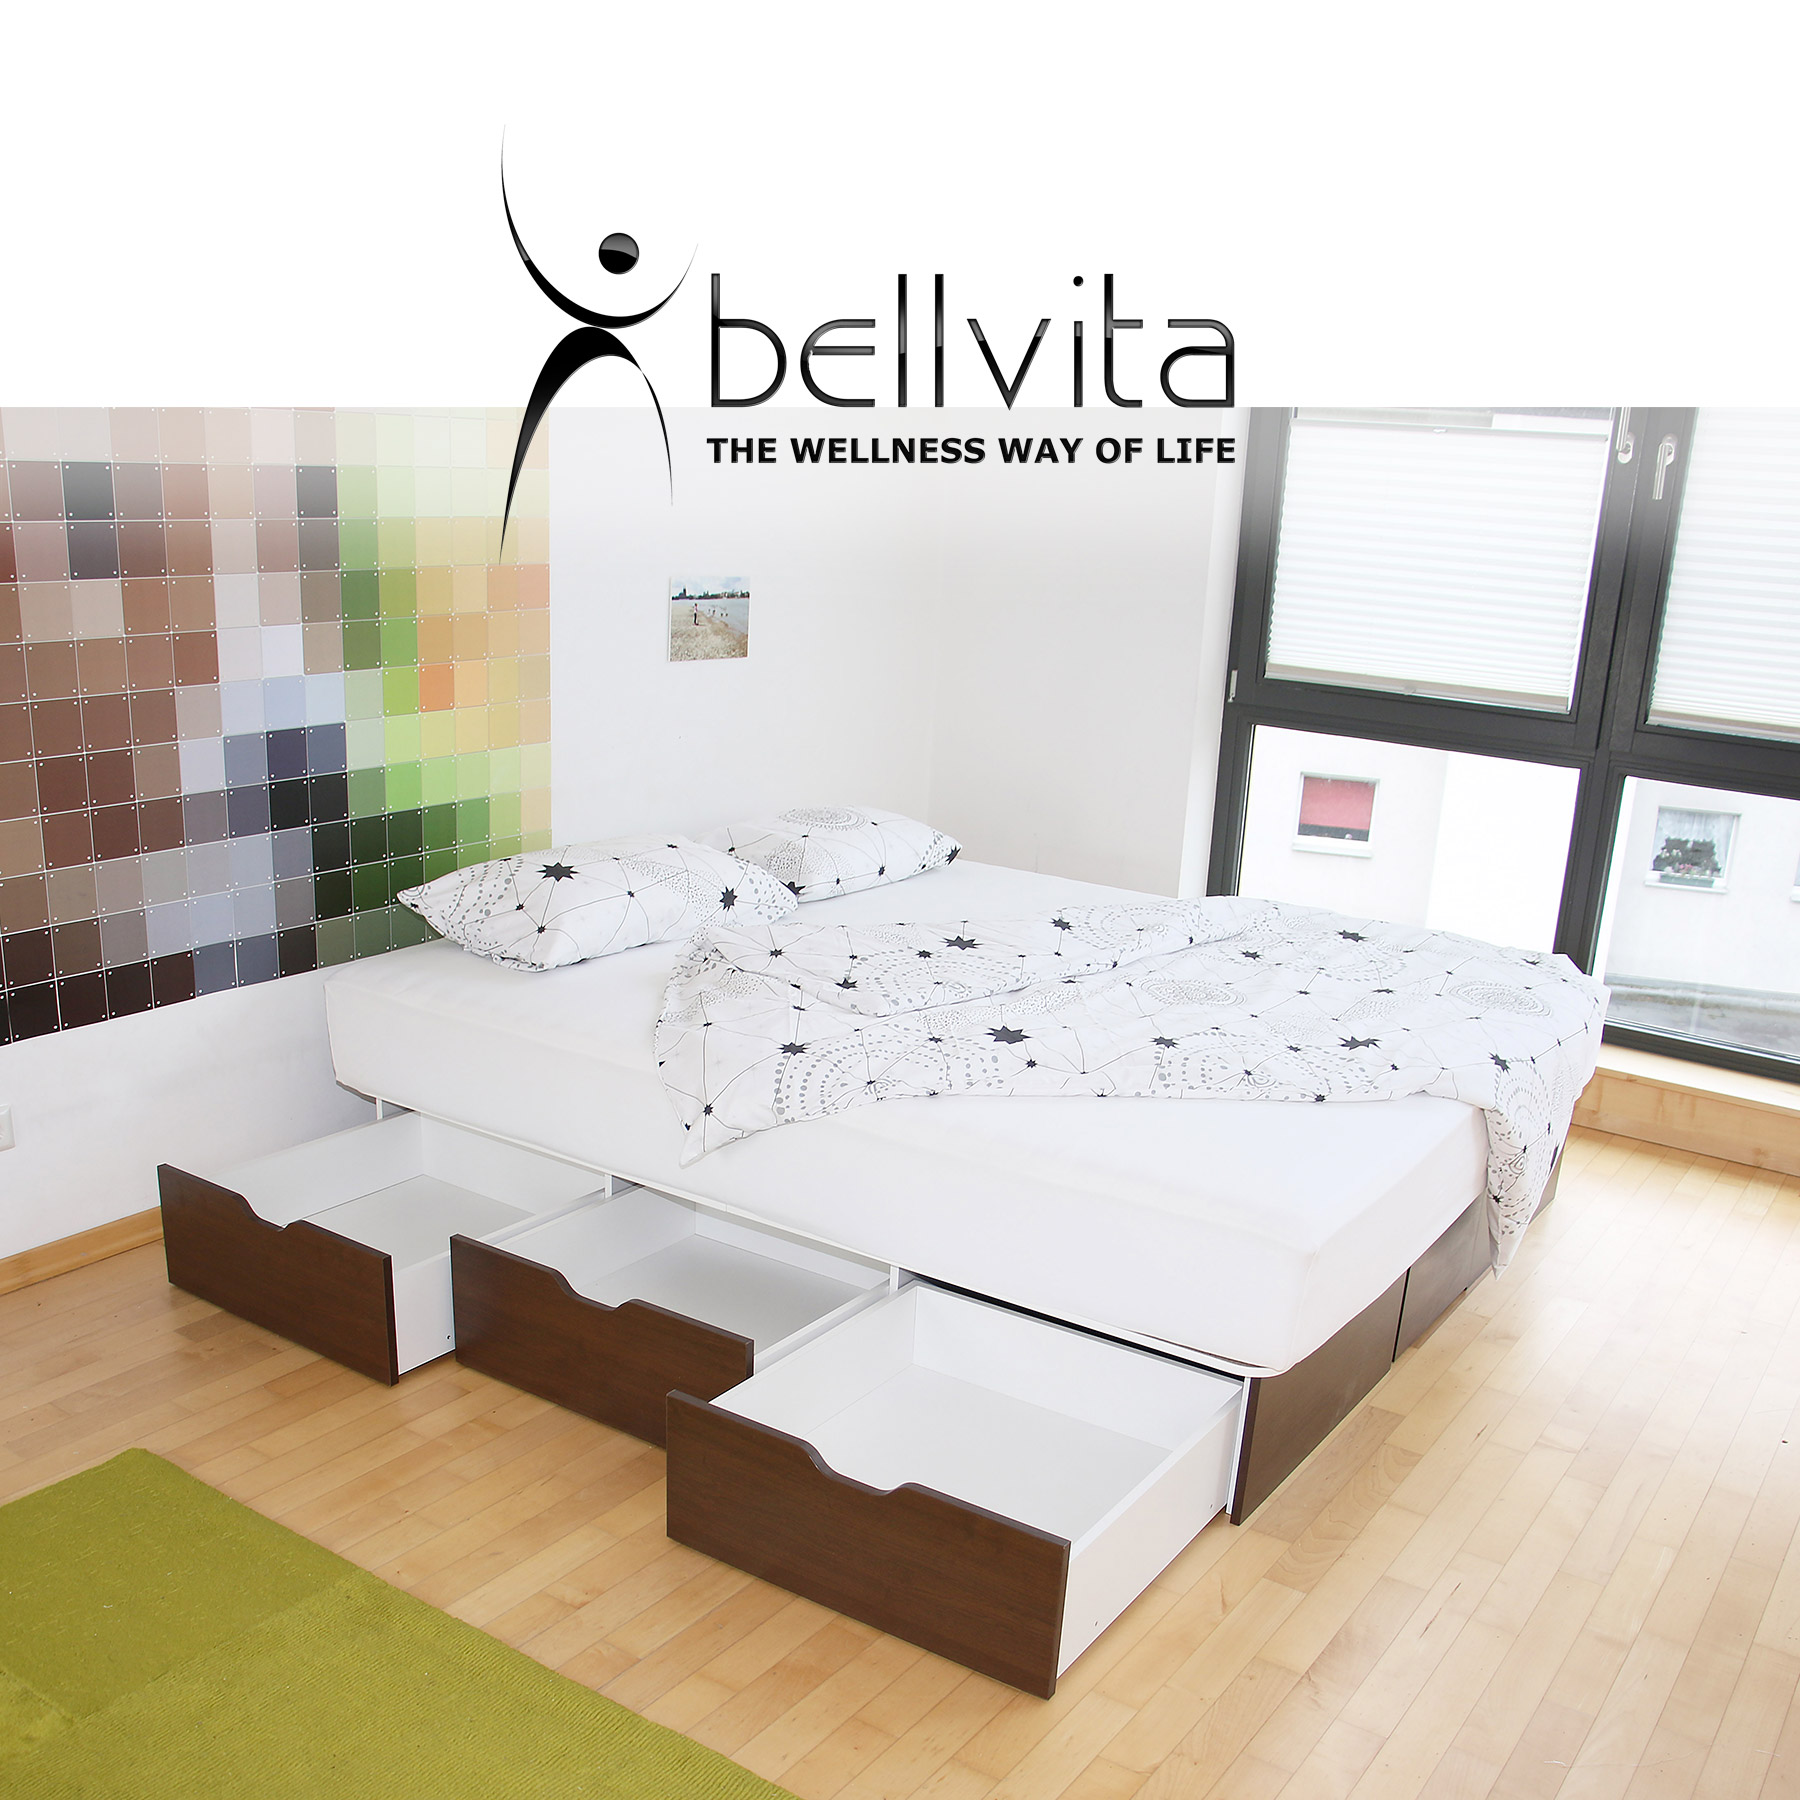 bellvita classicline wasserbett mit schubladensockel. Black Bedroom Furniture Sets. Home Design Ideas